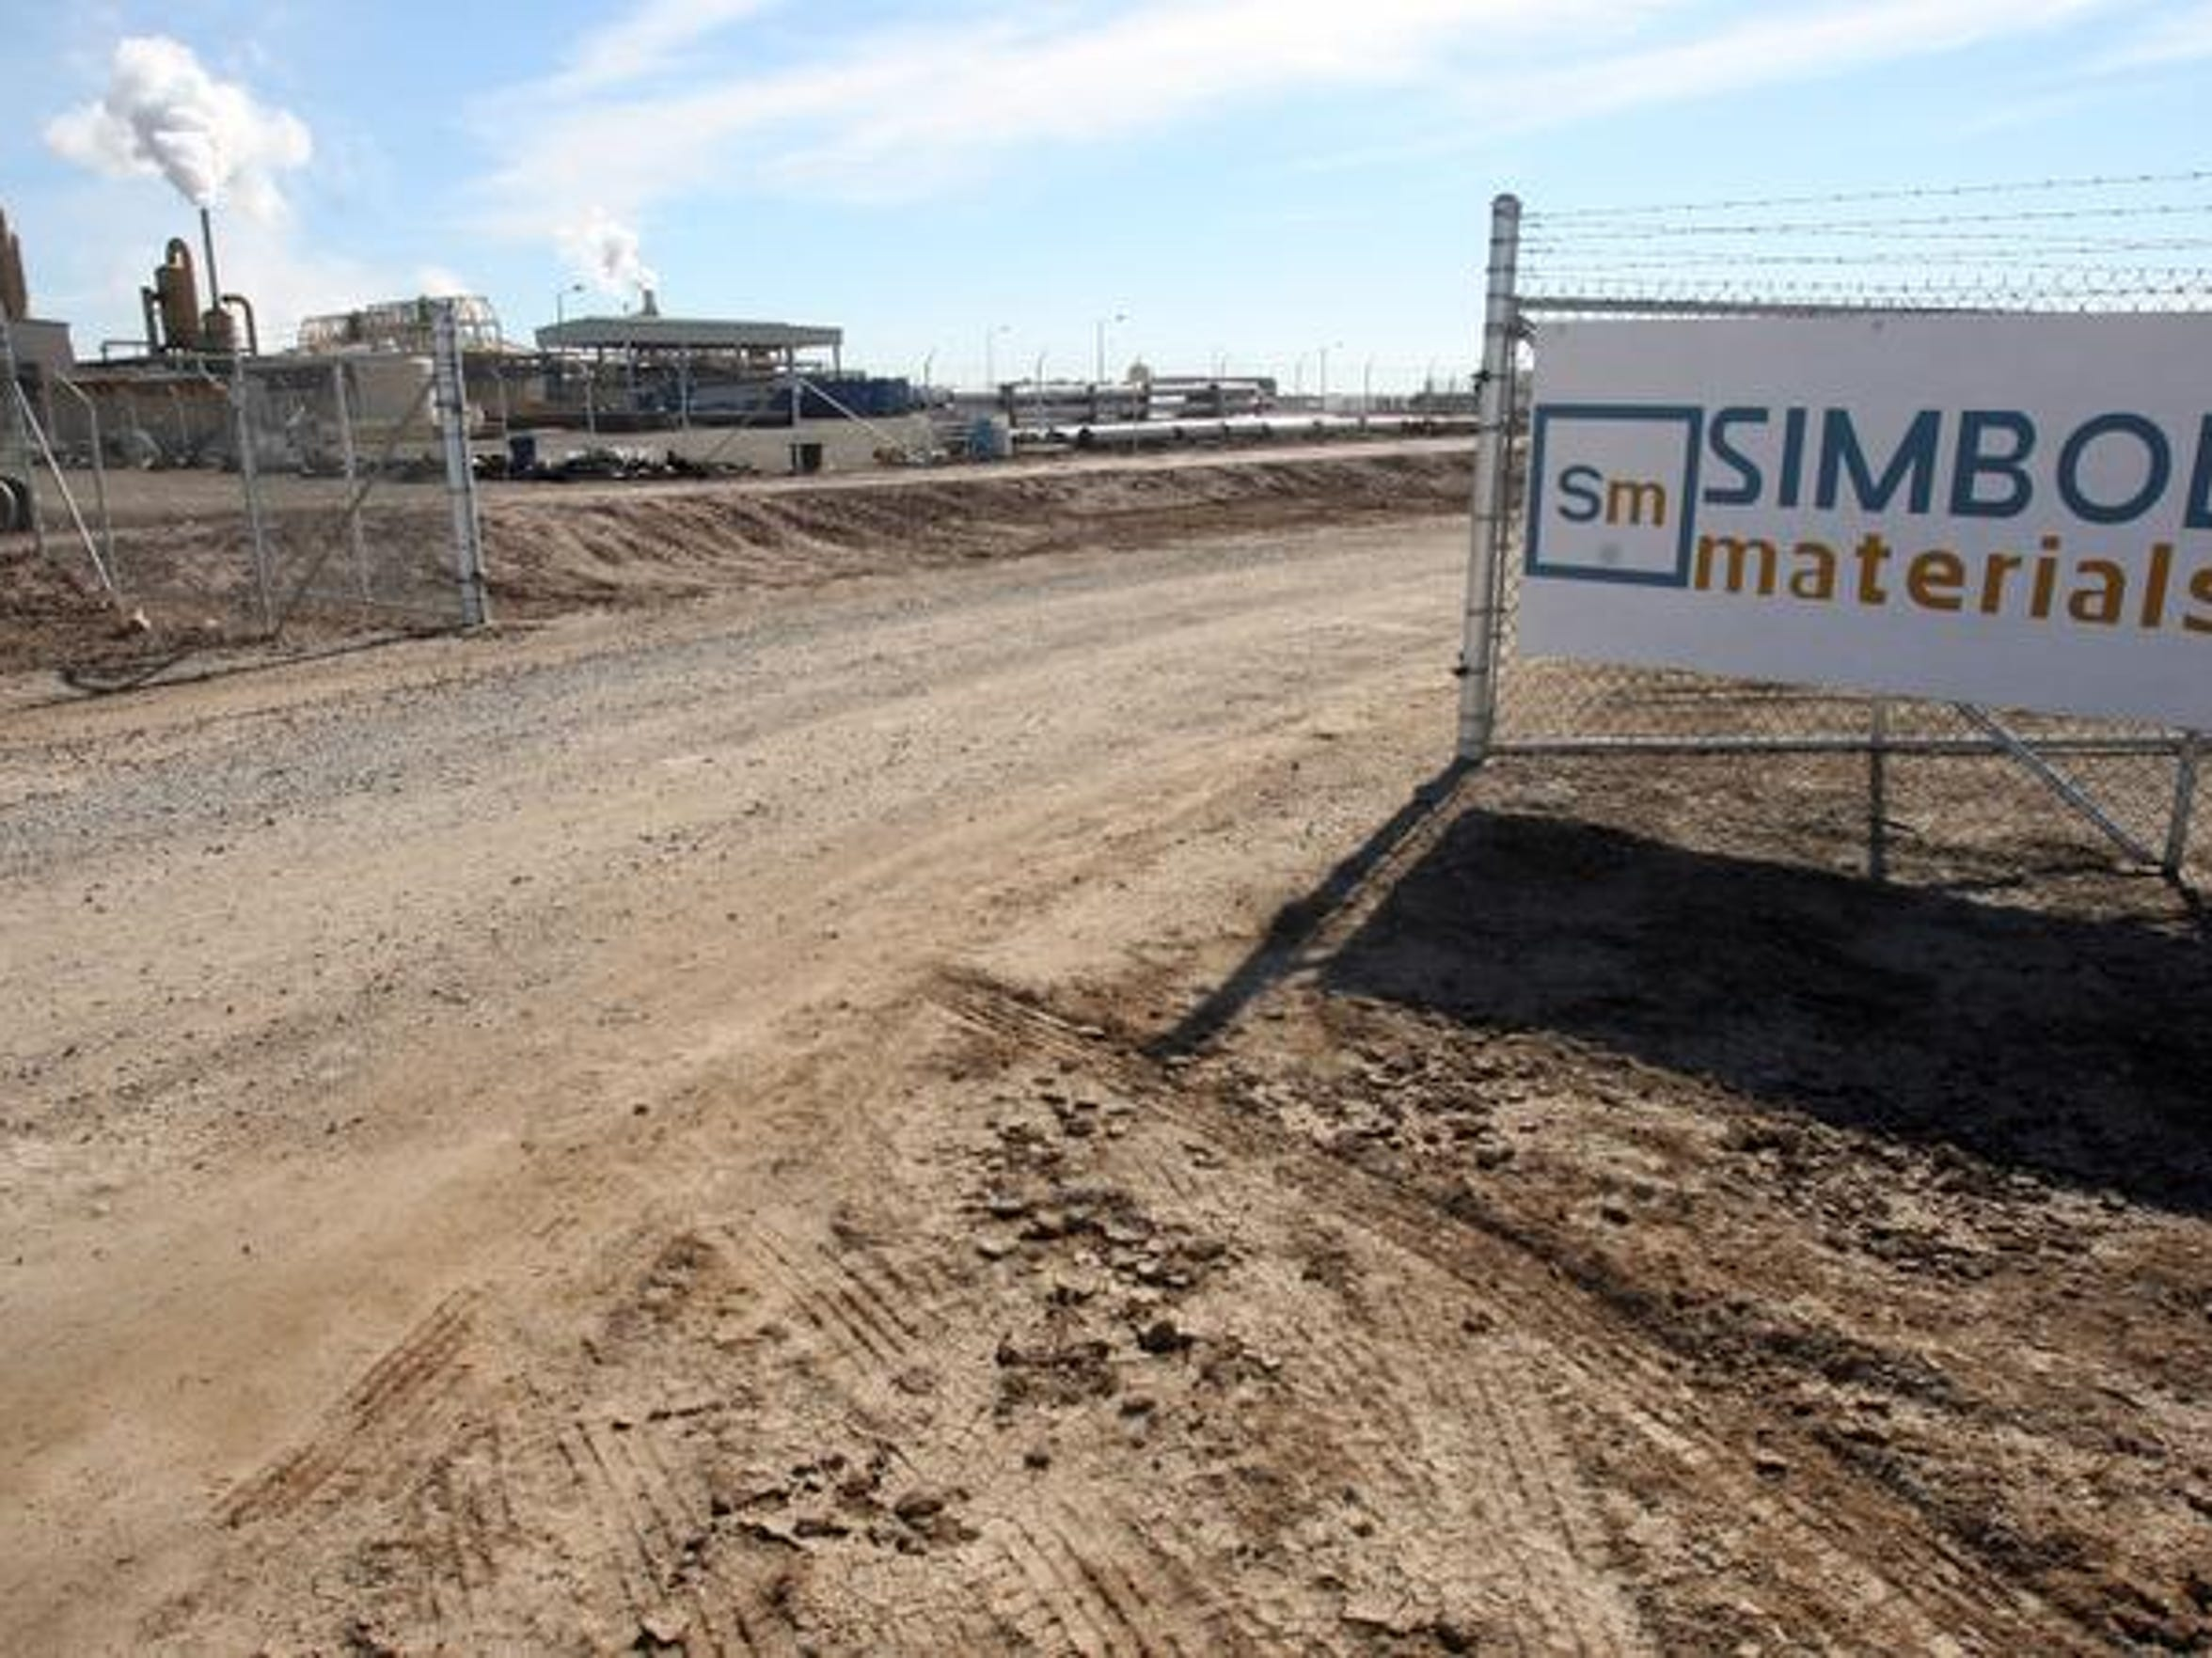 The entrance to Simbol Materials' Calipatria demonstration